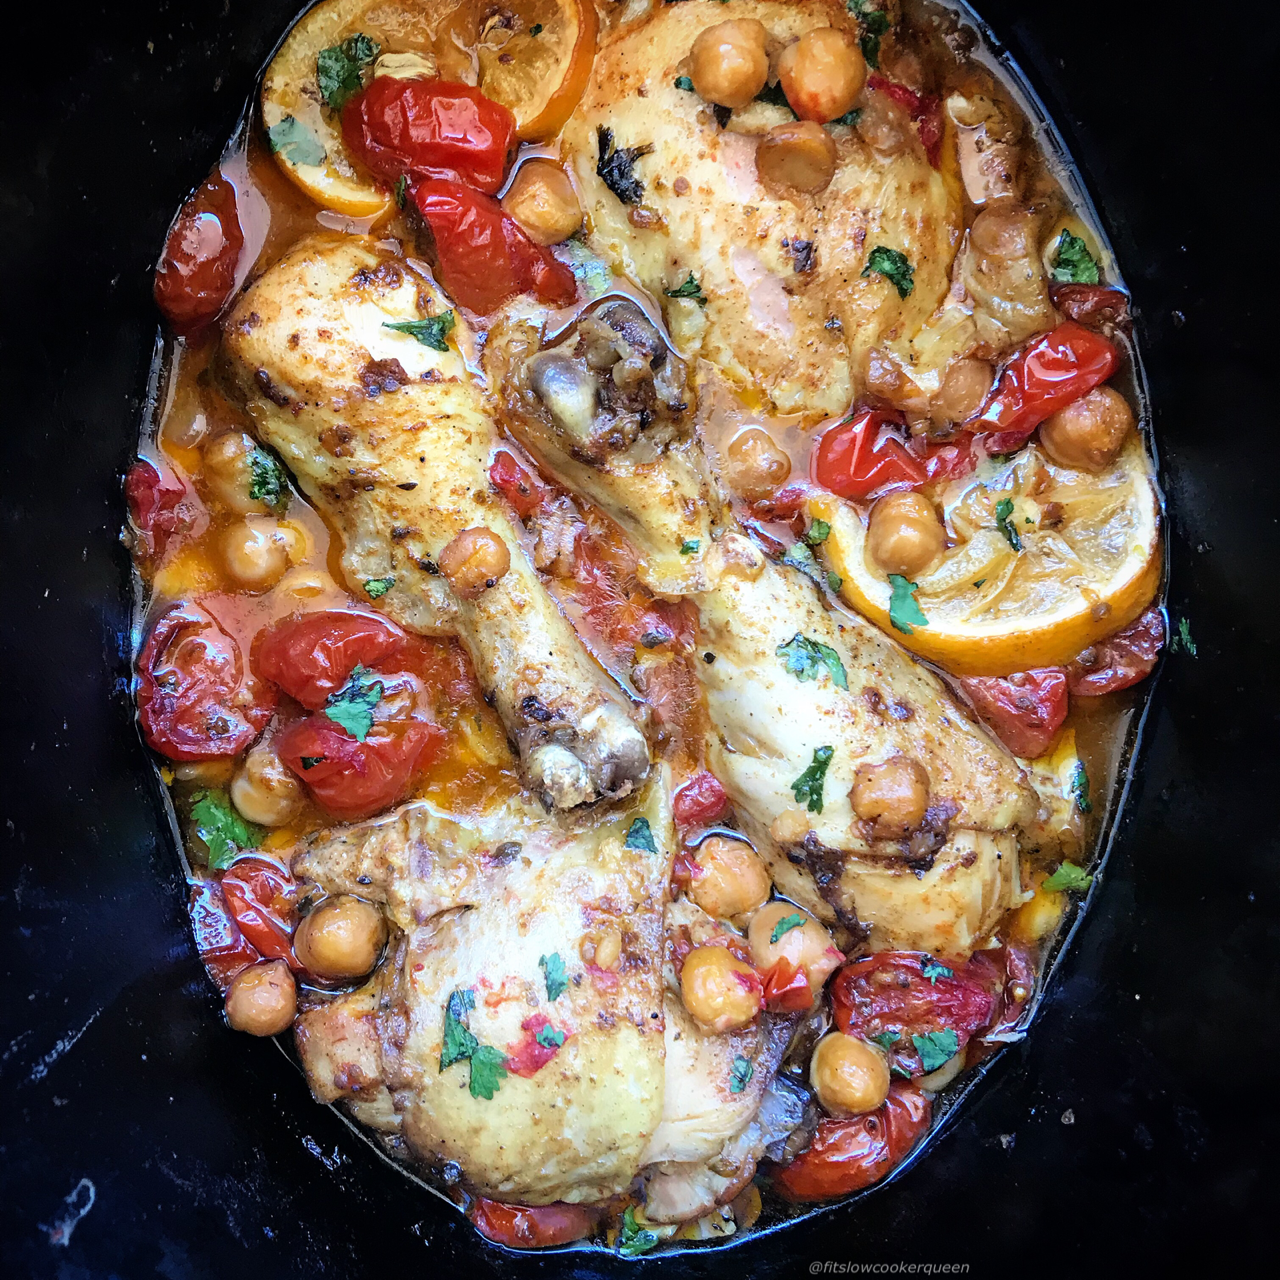 Mediterranean flavors enhance this easy, healthy and super flavorful chicken recipe. Use your preferred cut of chicken whether it be thighs, legs, or boneless chicken breast.